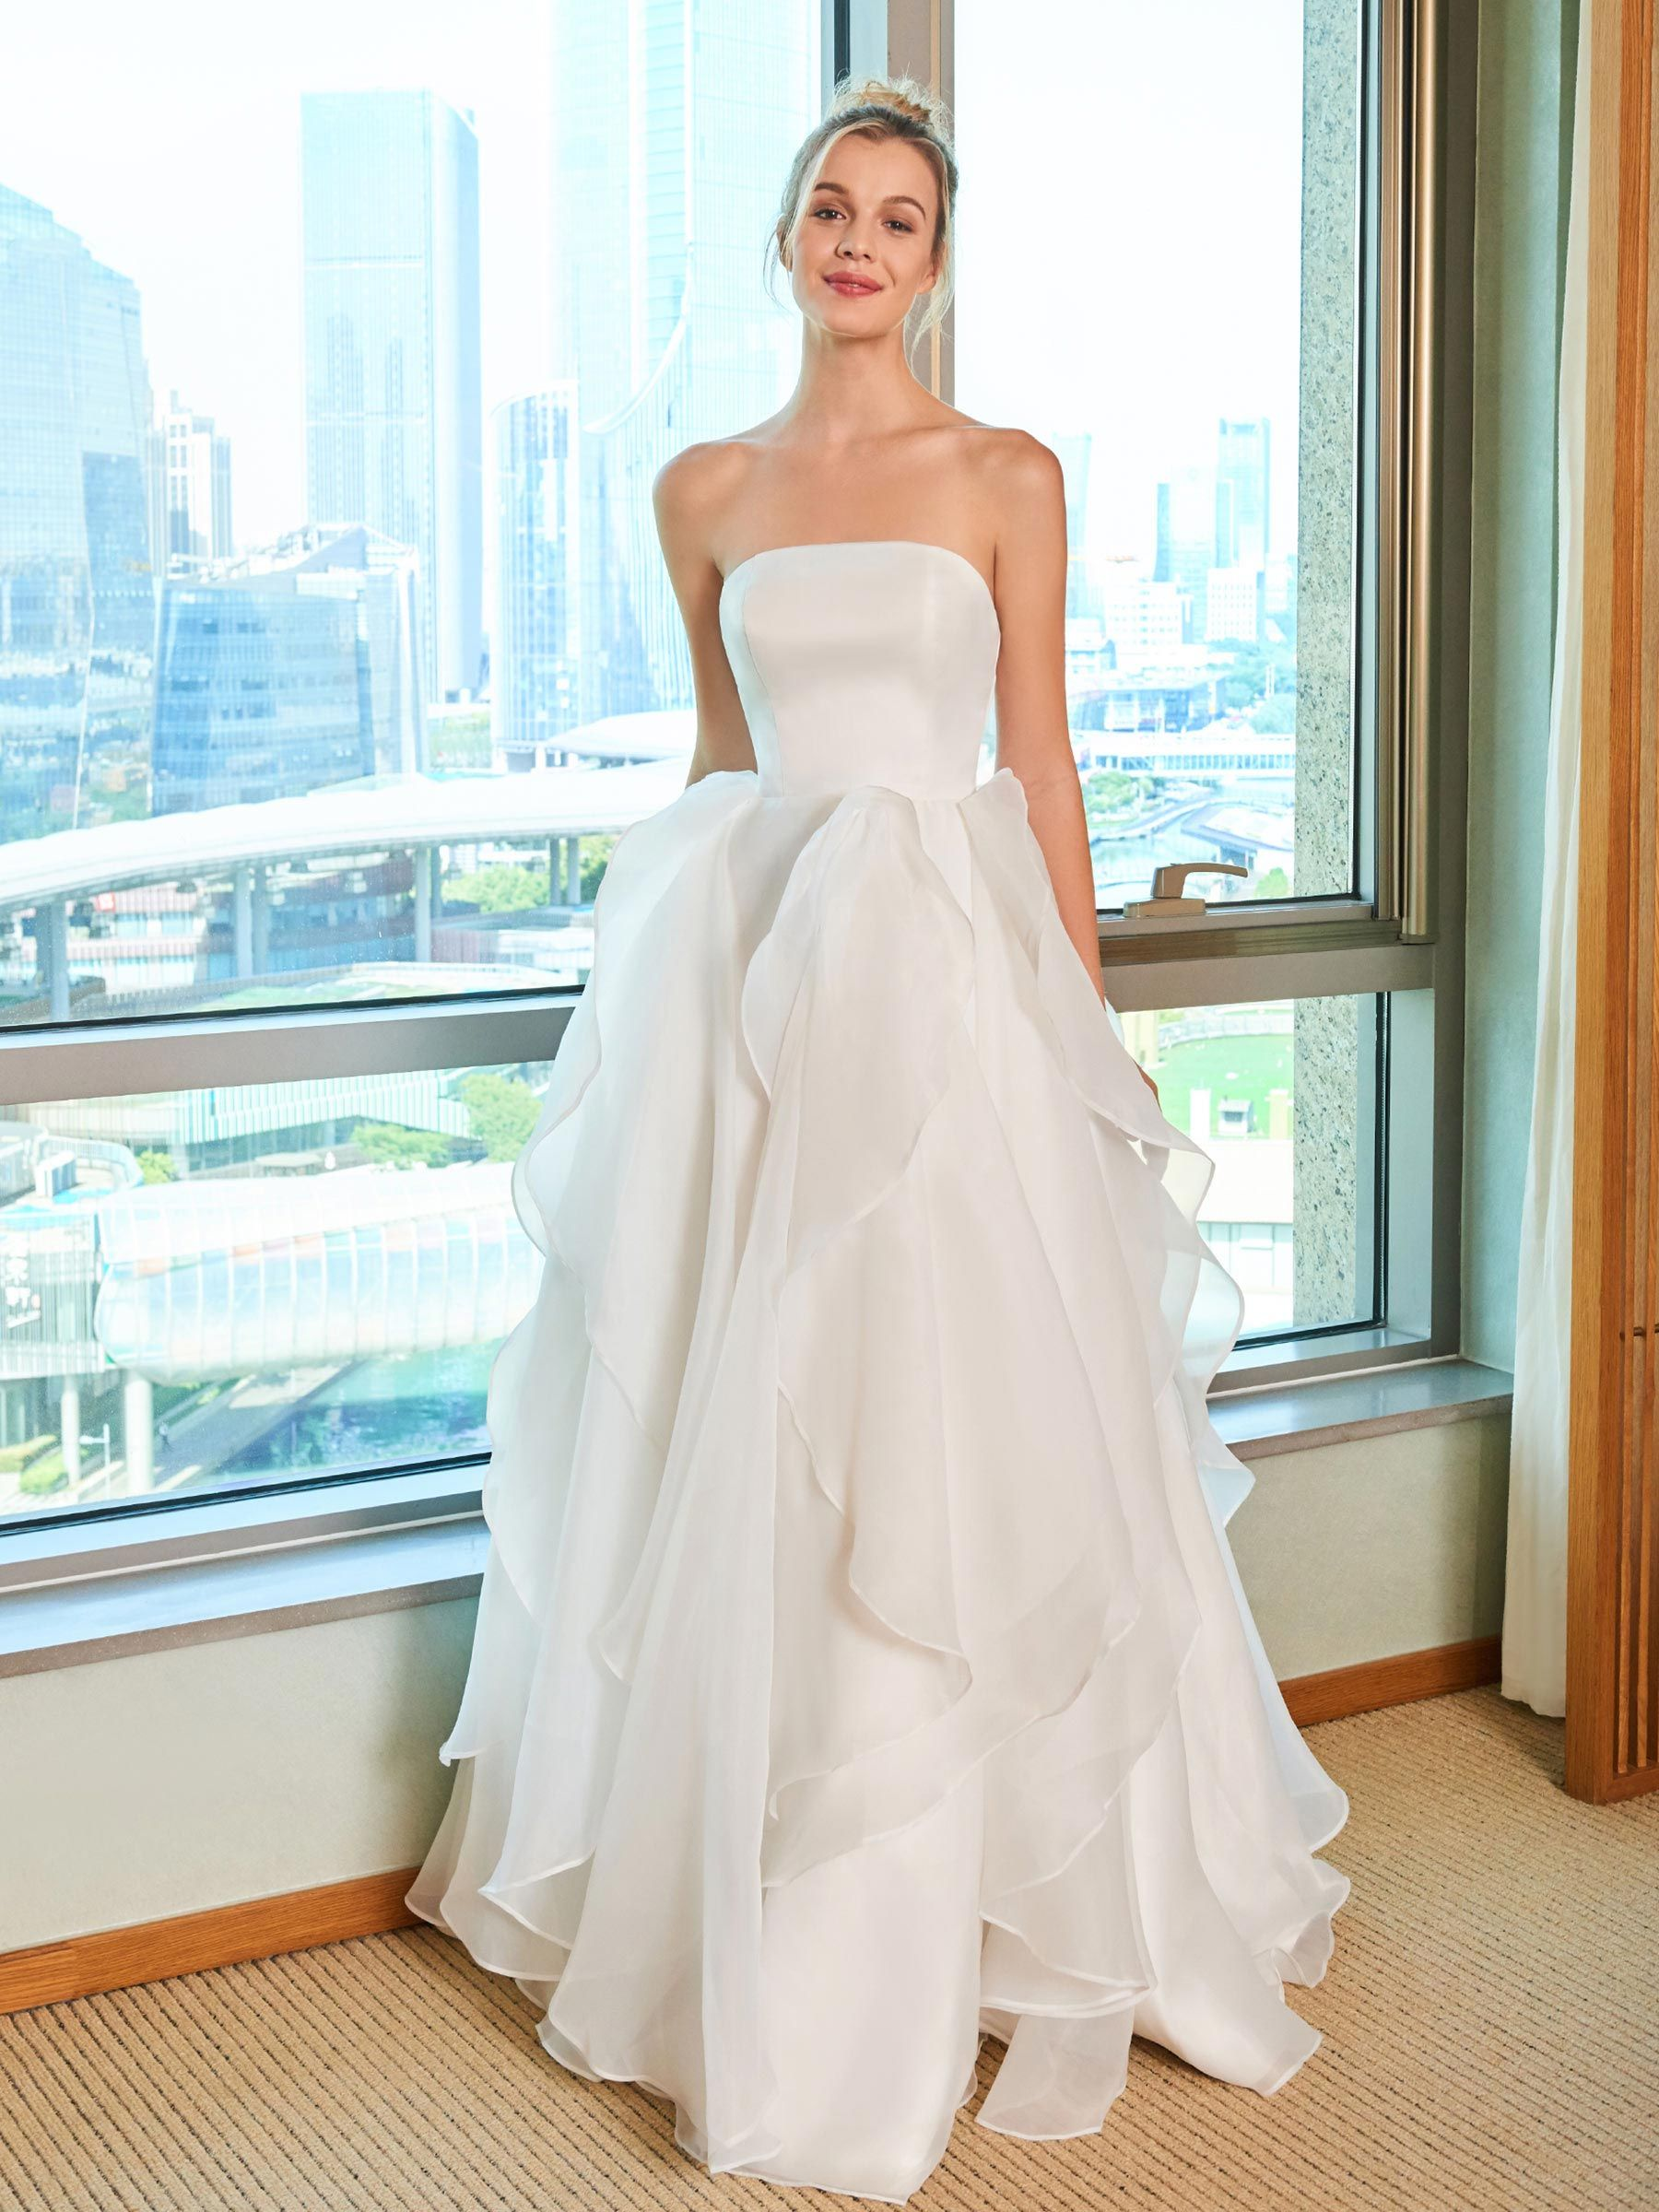 Luxury dresses for wedding guest  Strapless Ruffles Wedding Dress  Wedding Dresses  Pinterest